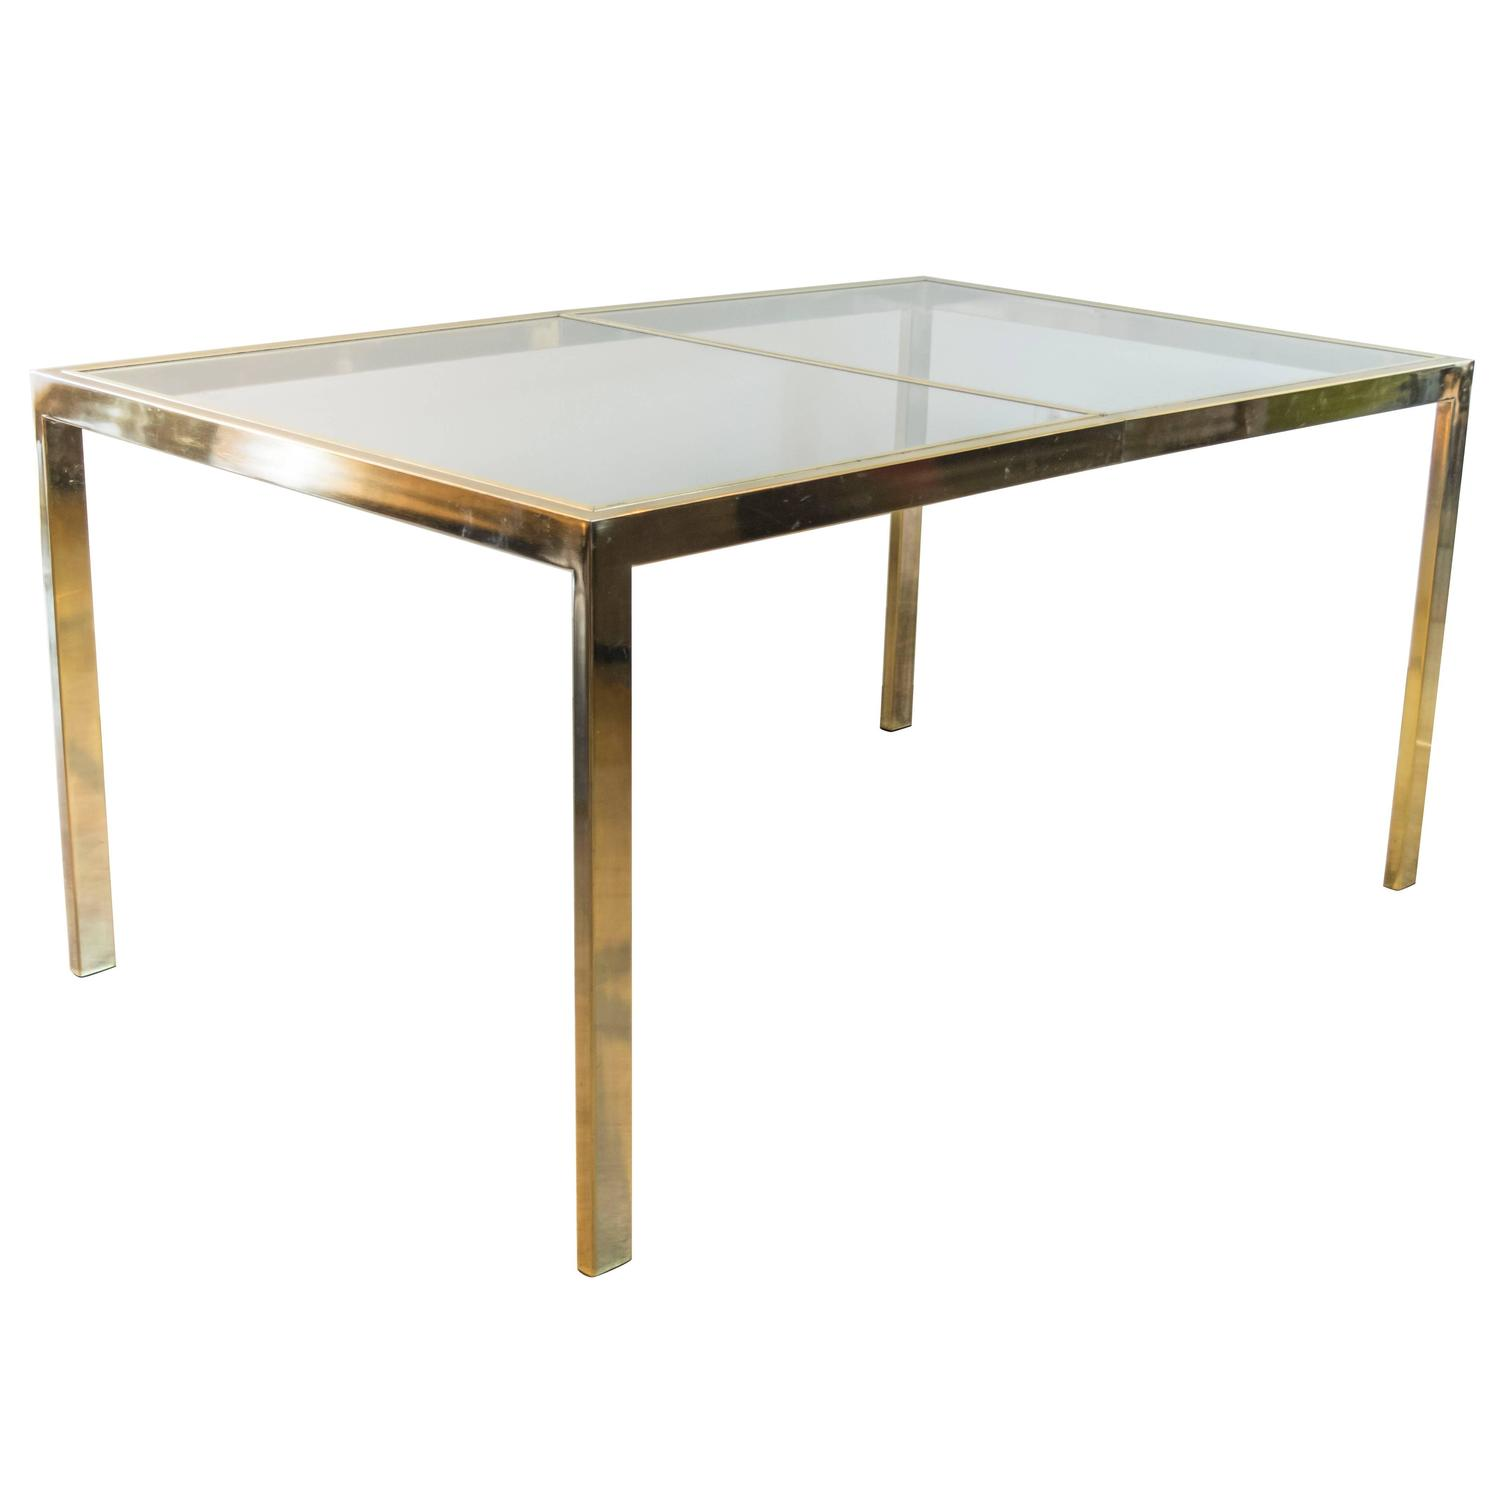 Milo Baughman For Thayer Coggin Brass Extendable Dining Table At